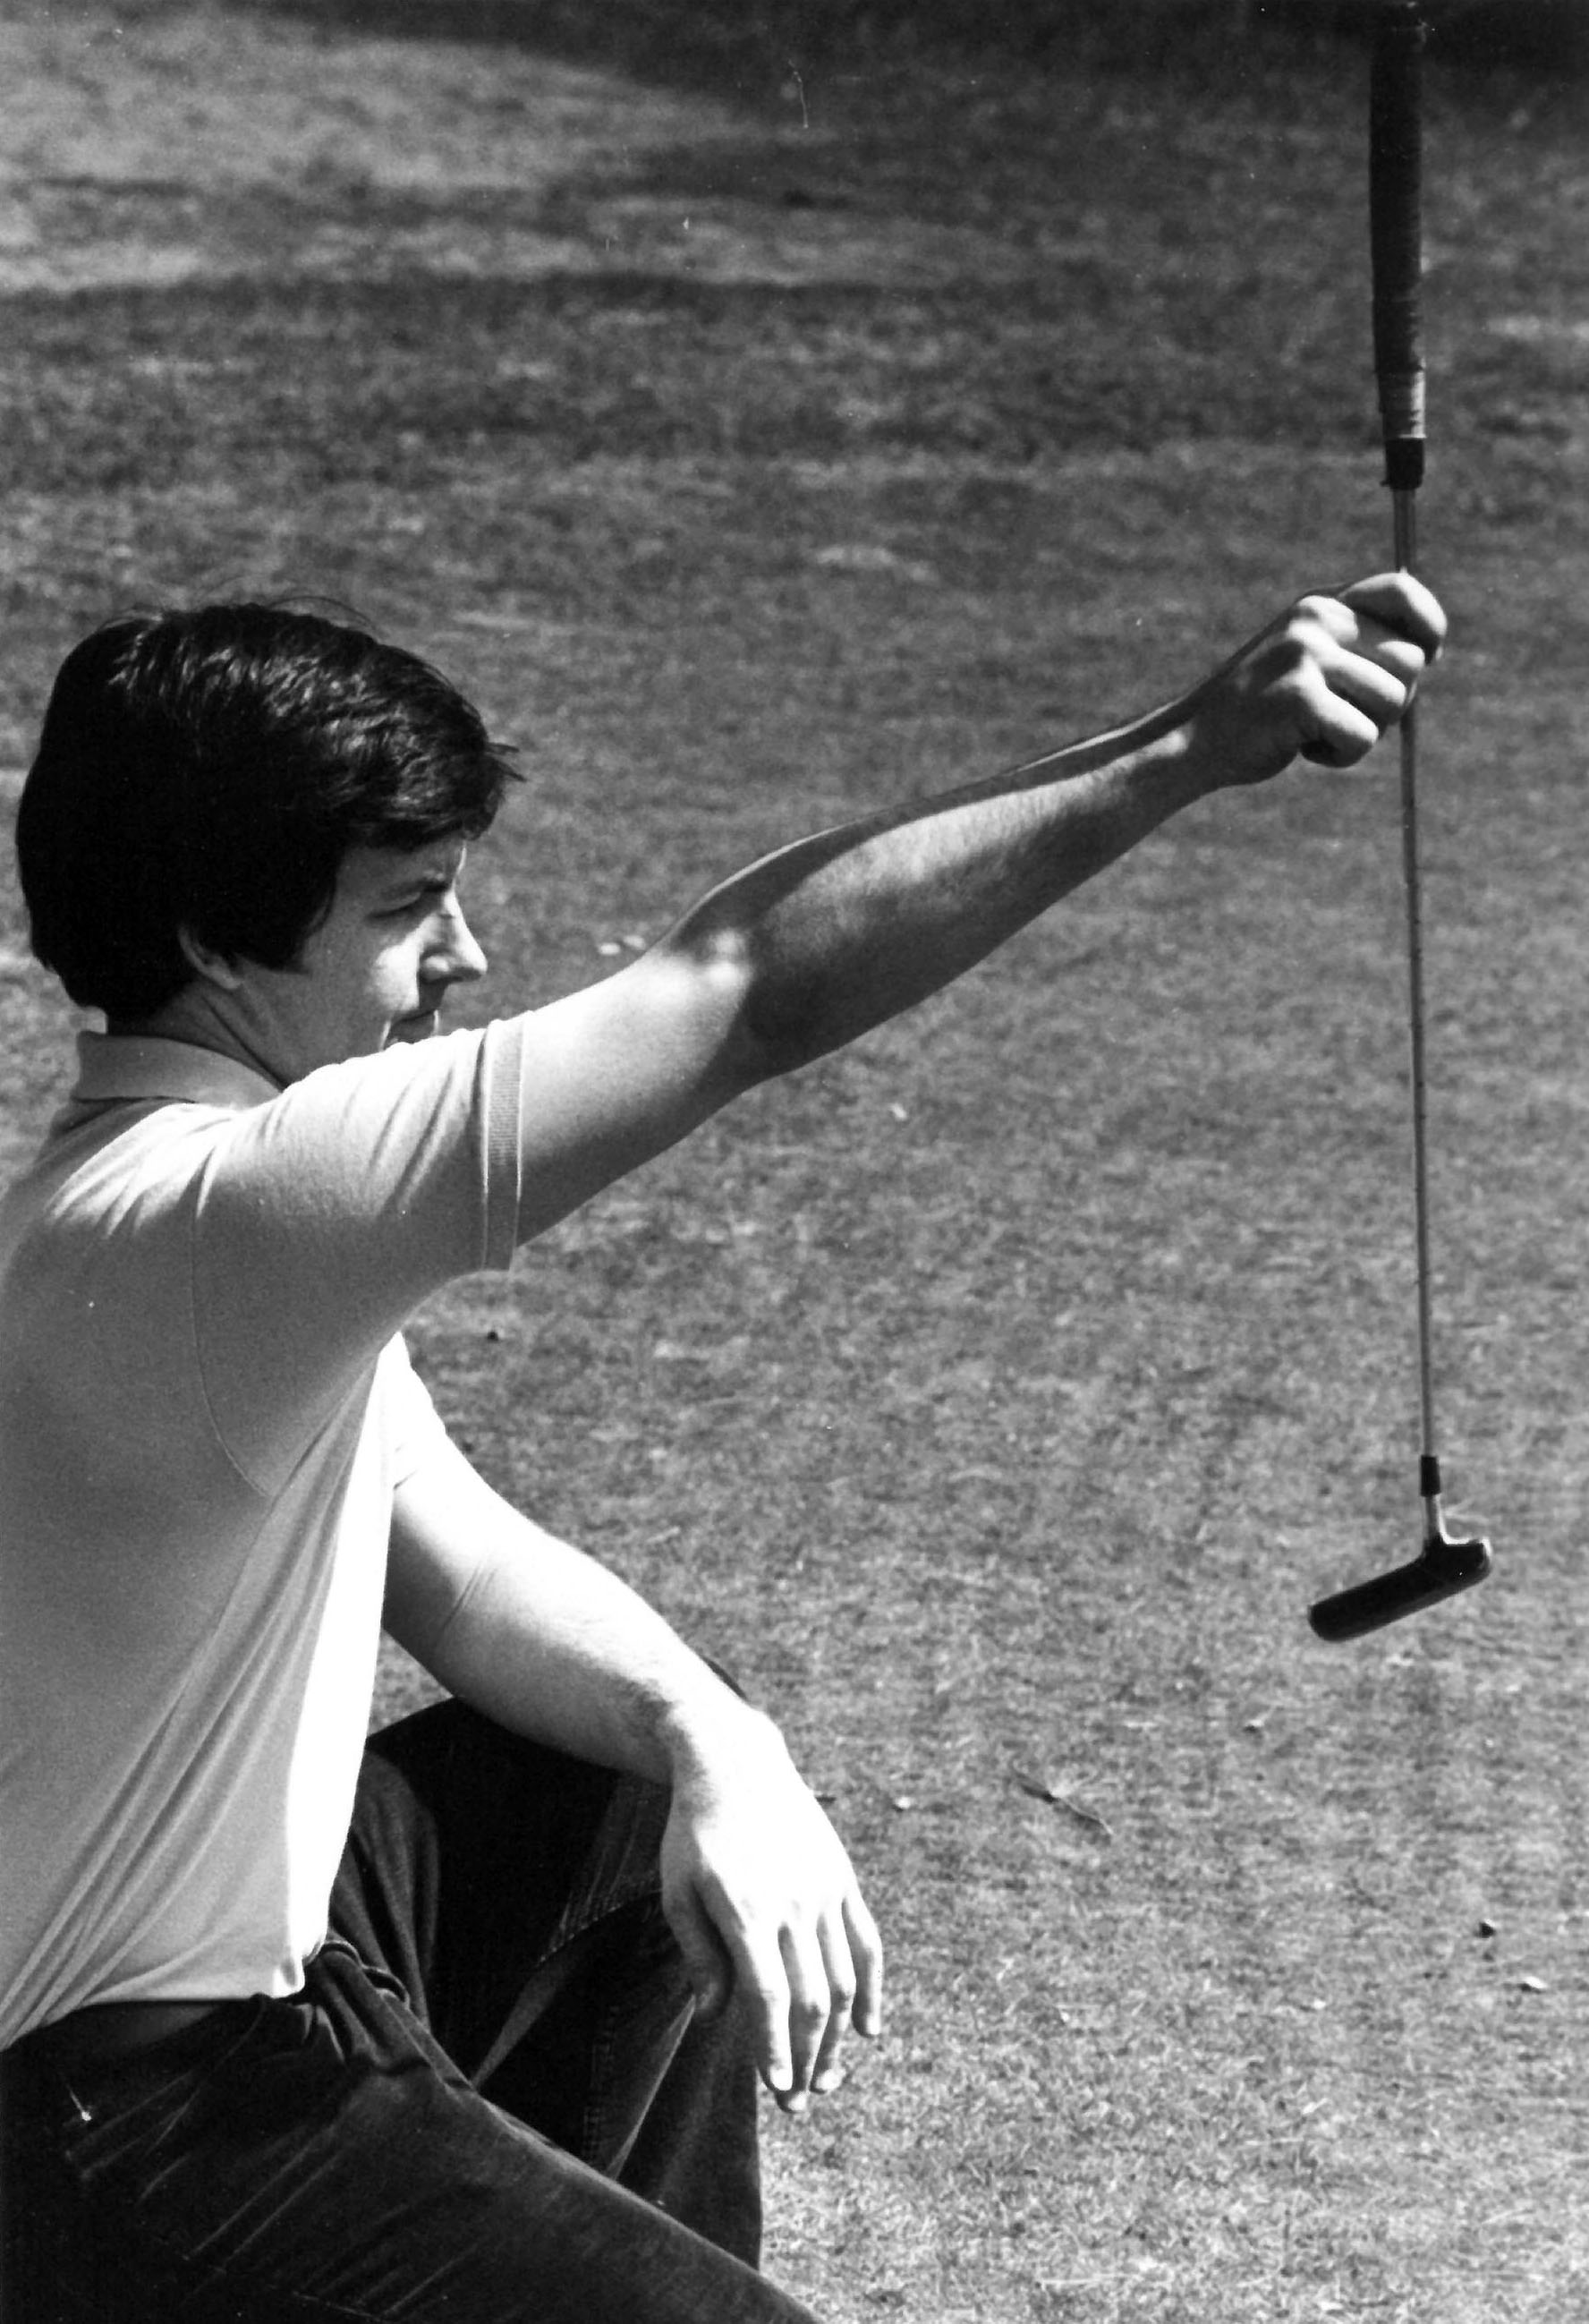 Suffolk University golf player Andy Campbell, 1978